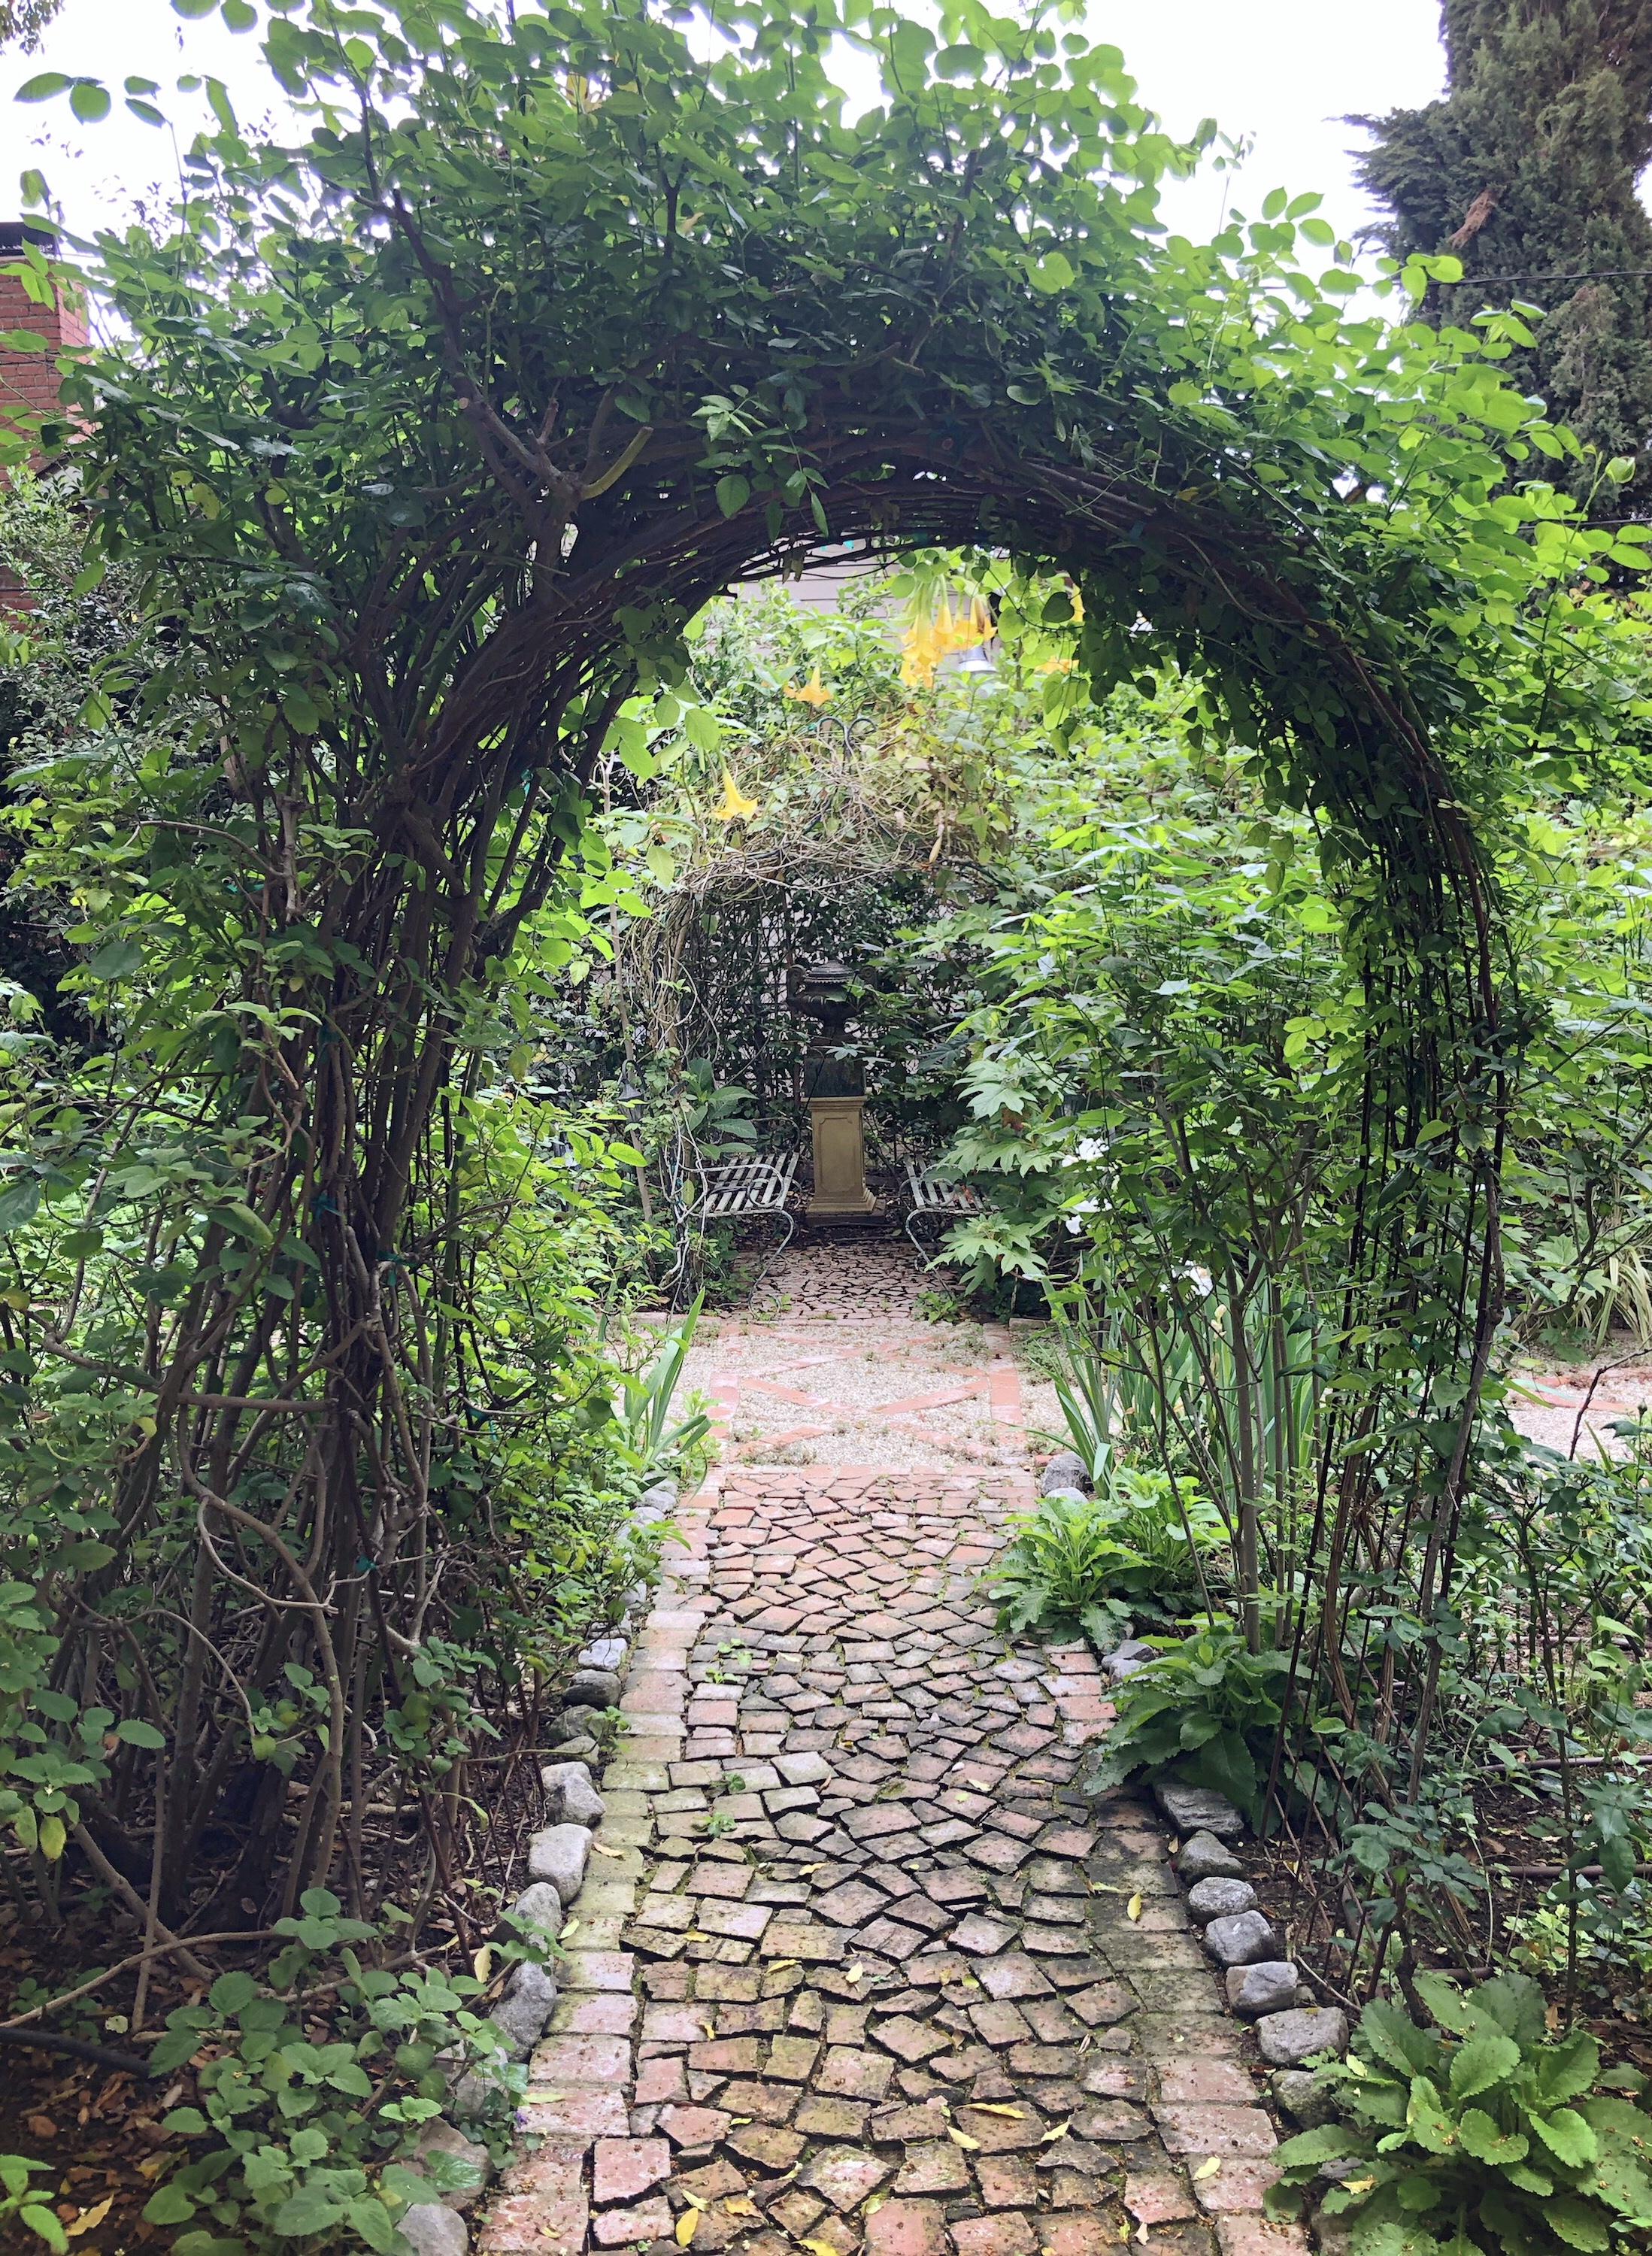 Kate and Odom Stamps' lush garden is full of paths leading to beautiful surprises.